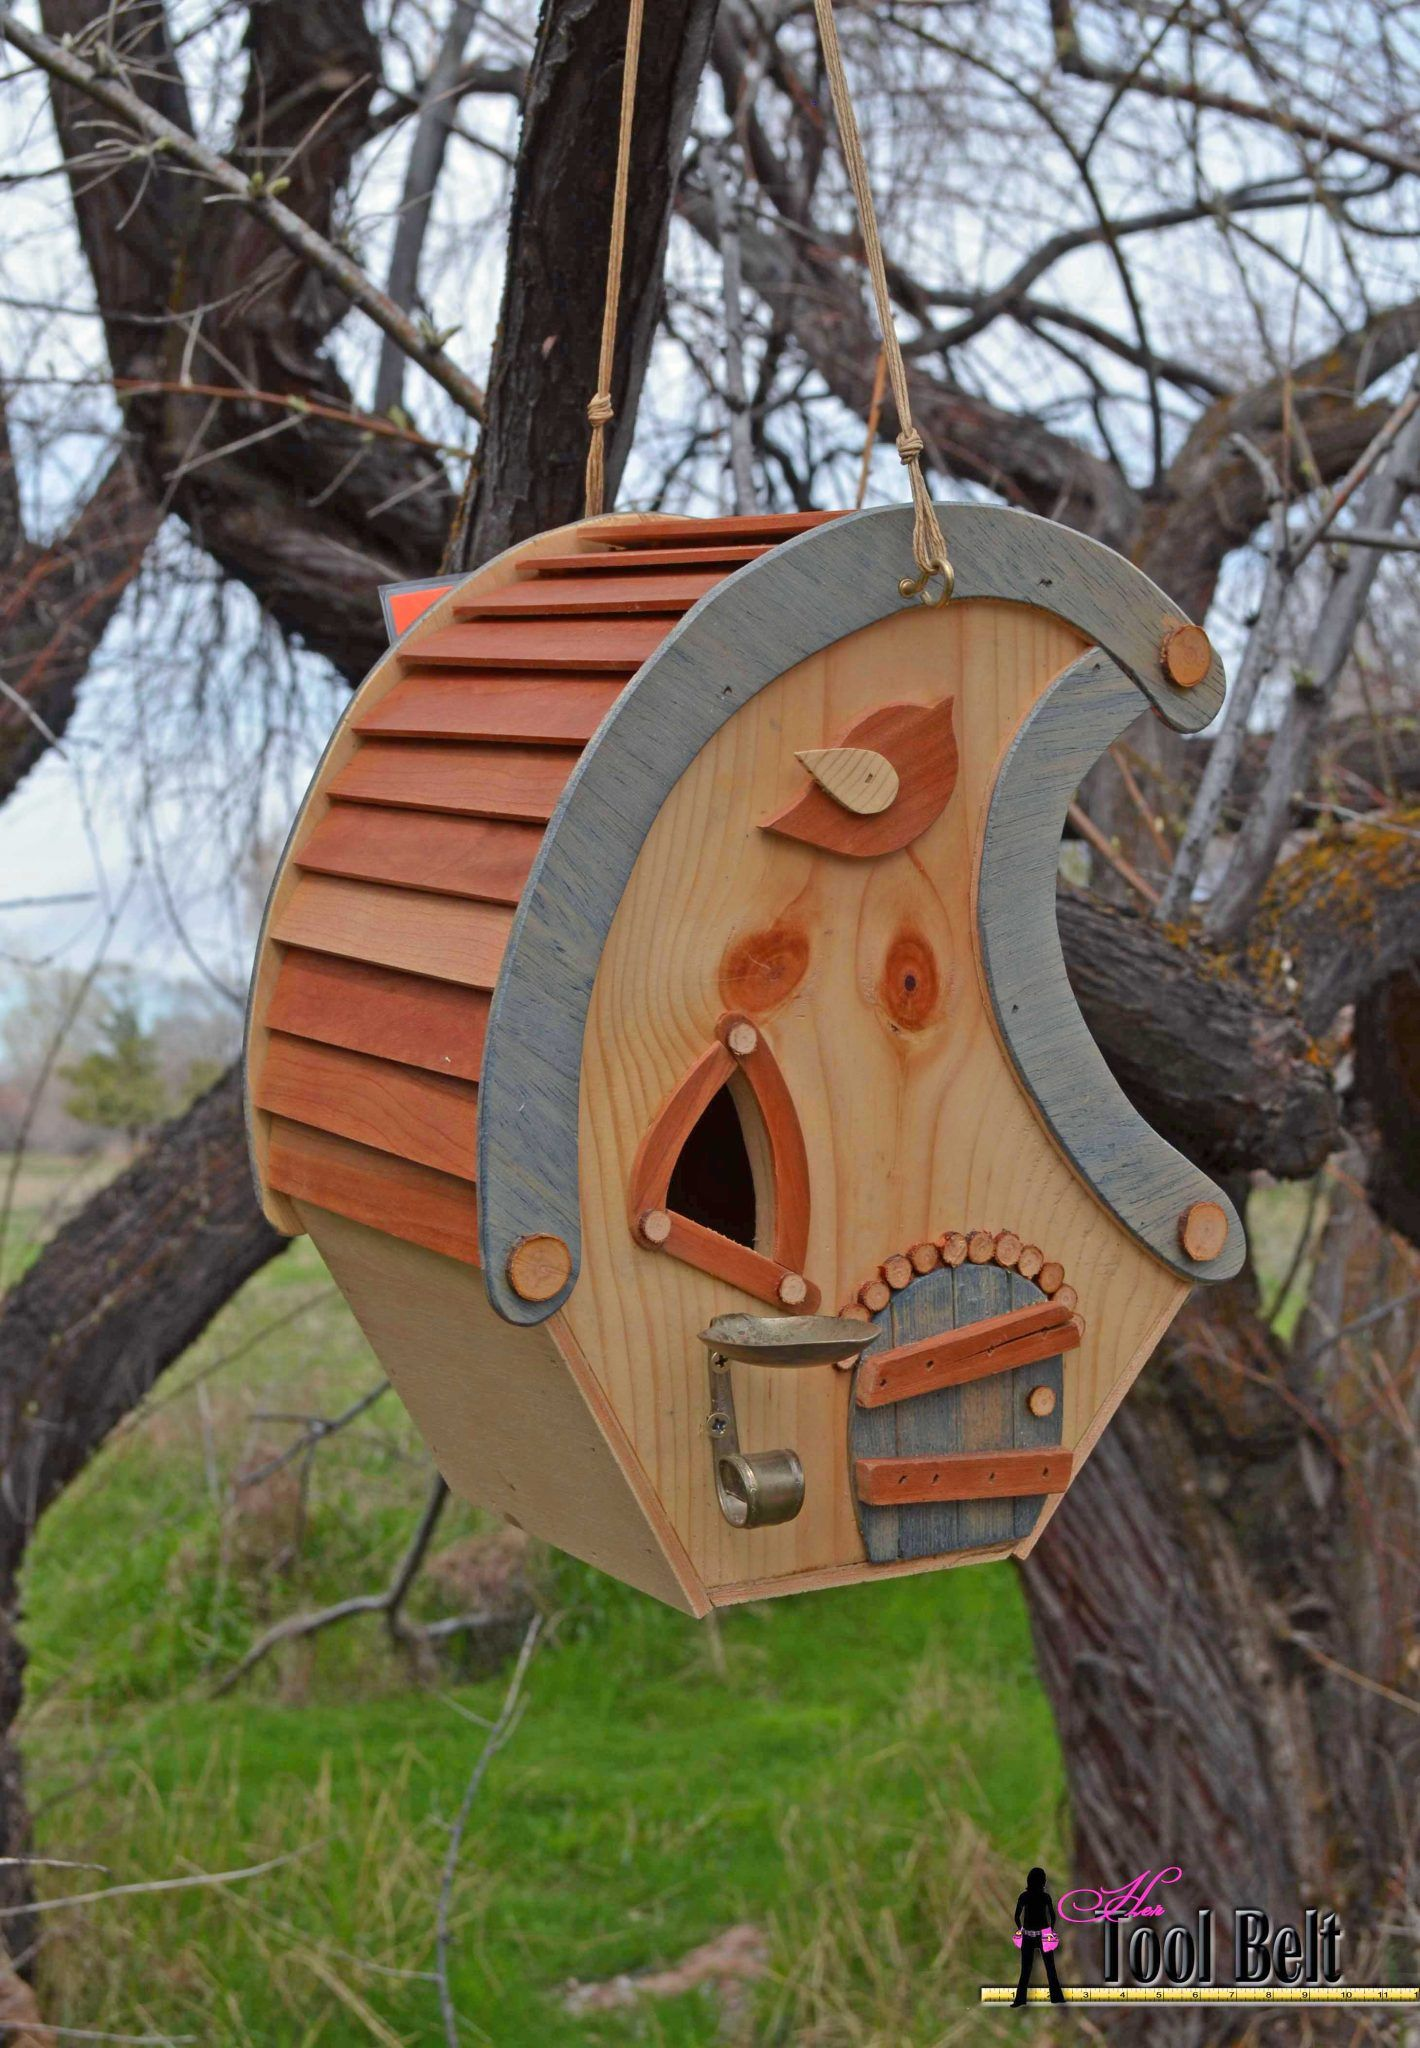 Celebrate Spring by making fun birdhouses with